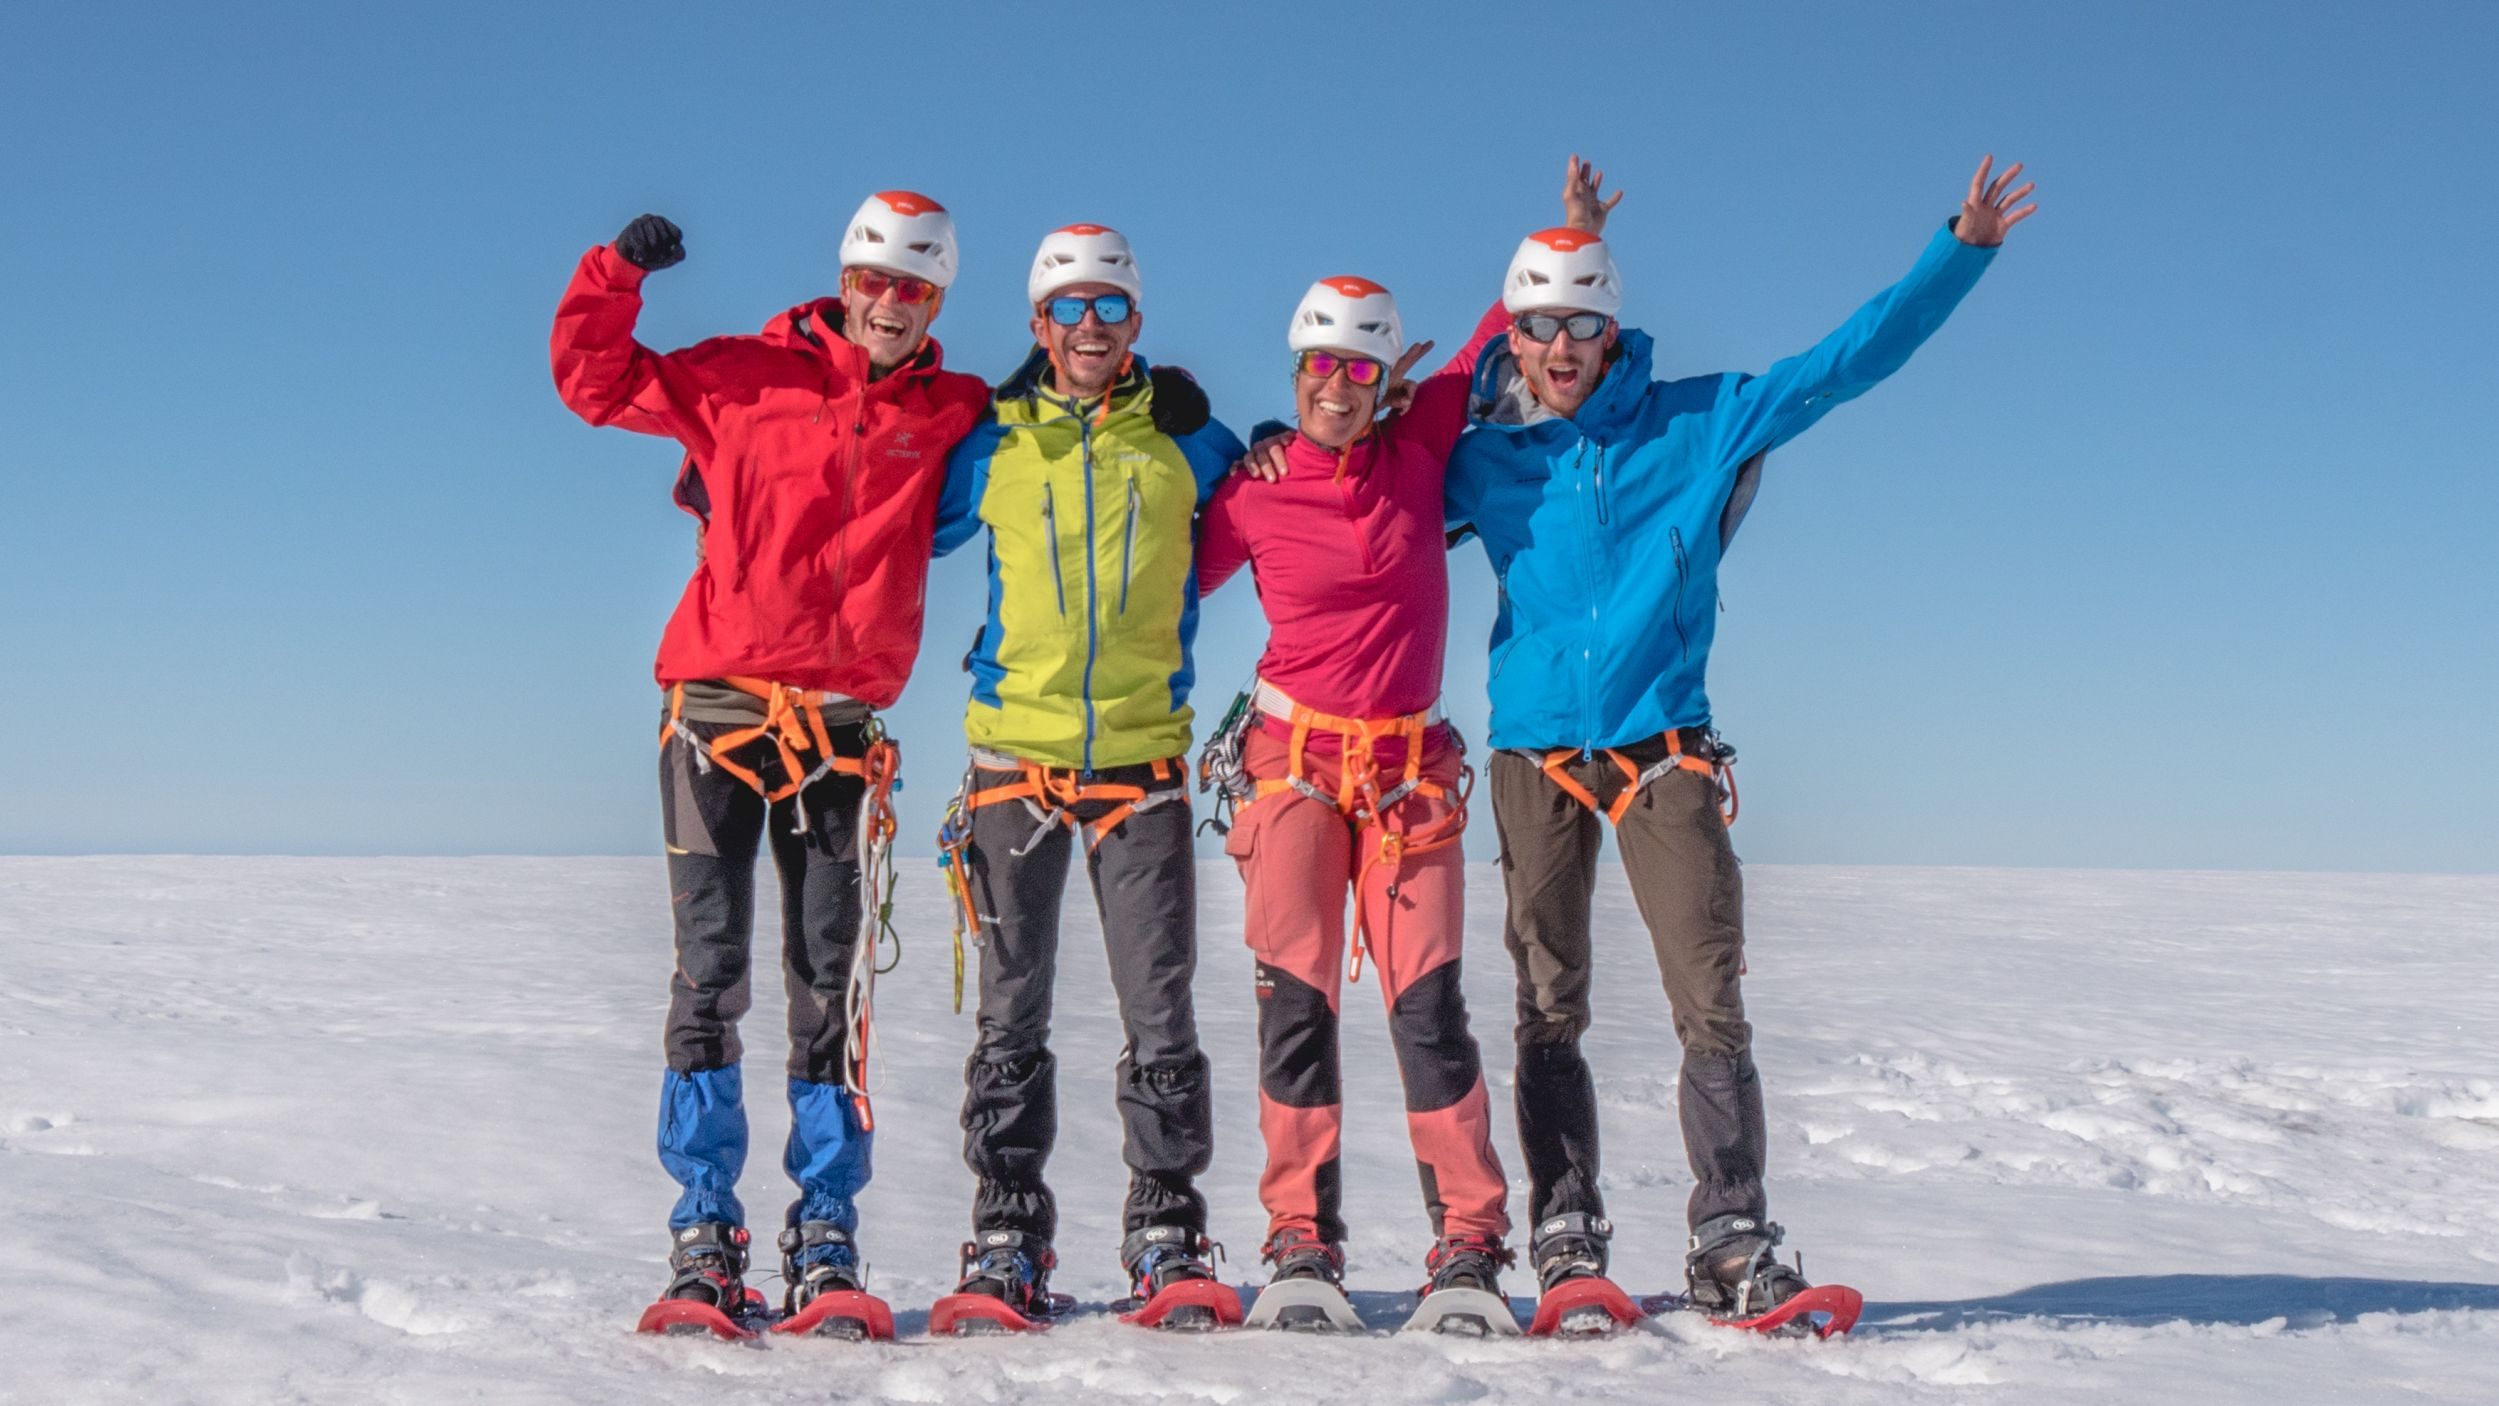 Gift Card 200 € - Valid on all Explora Project expeditions image 2